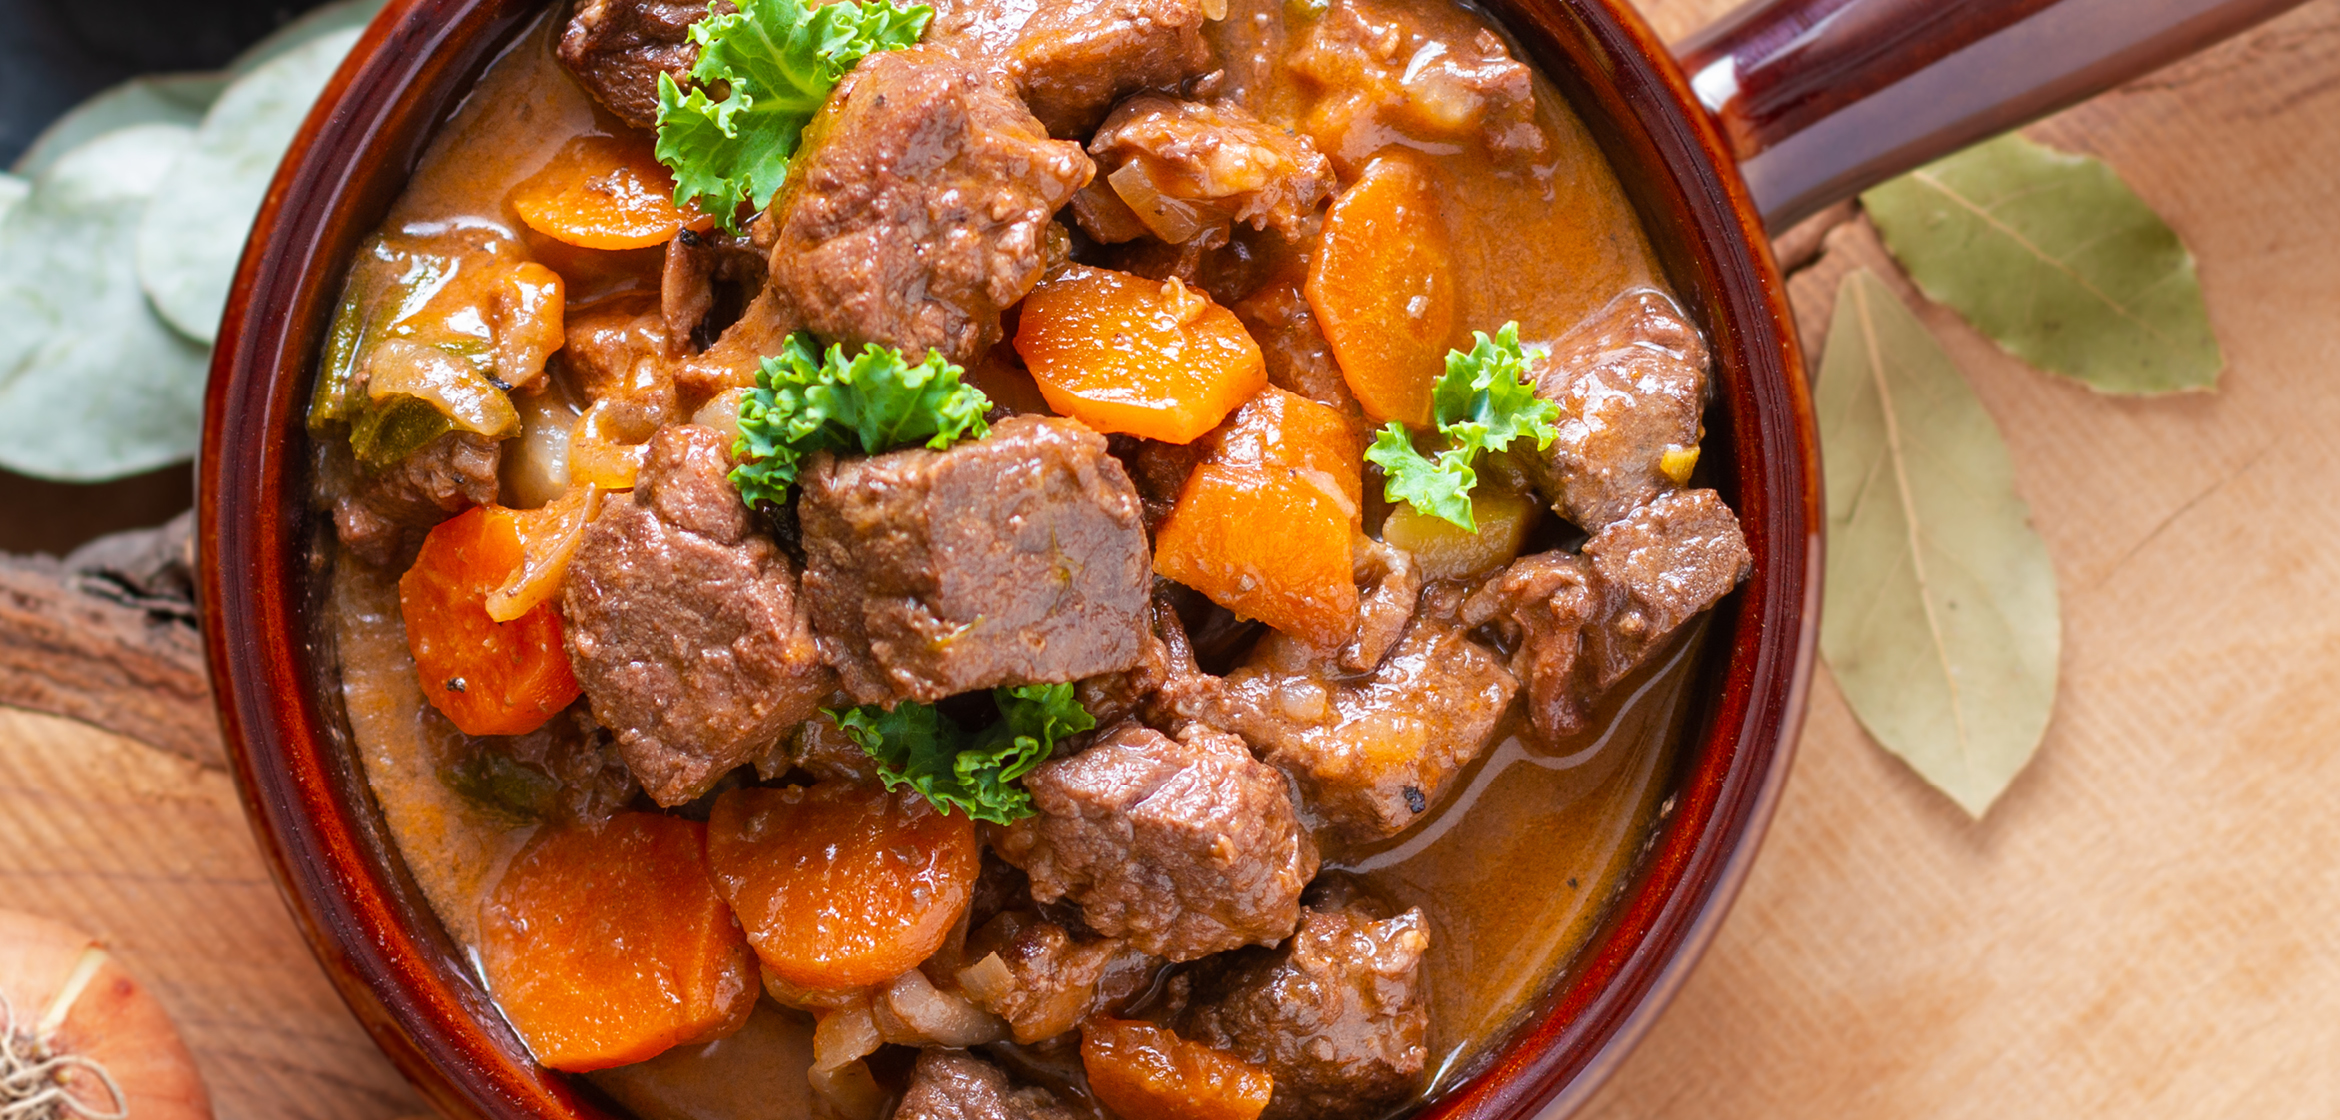 COUNTRY LAMB & VEGETABLE CASSEROLE